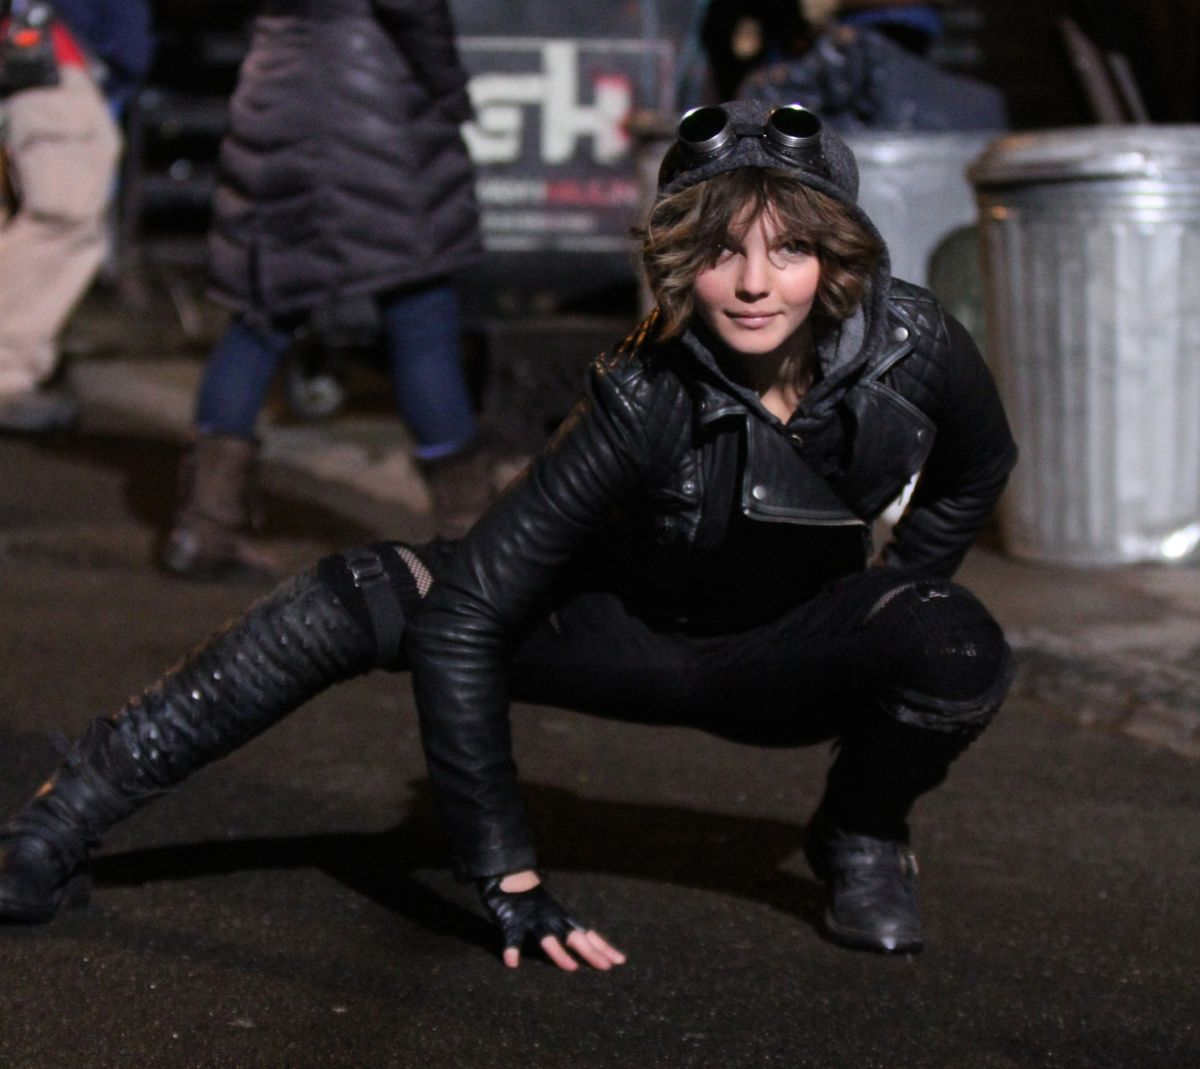 Camren bicondova on the set of the gotham tv series in downtown